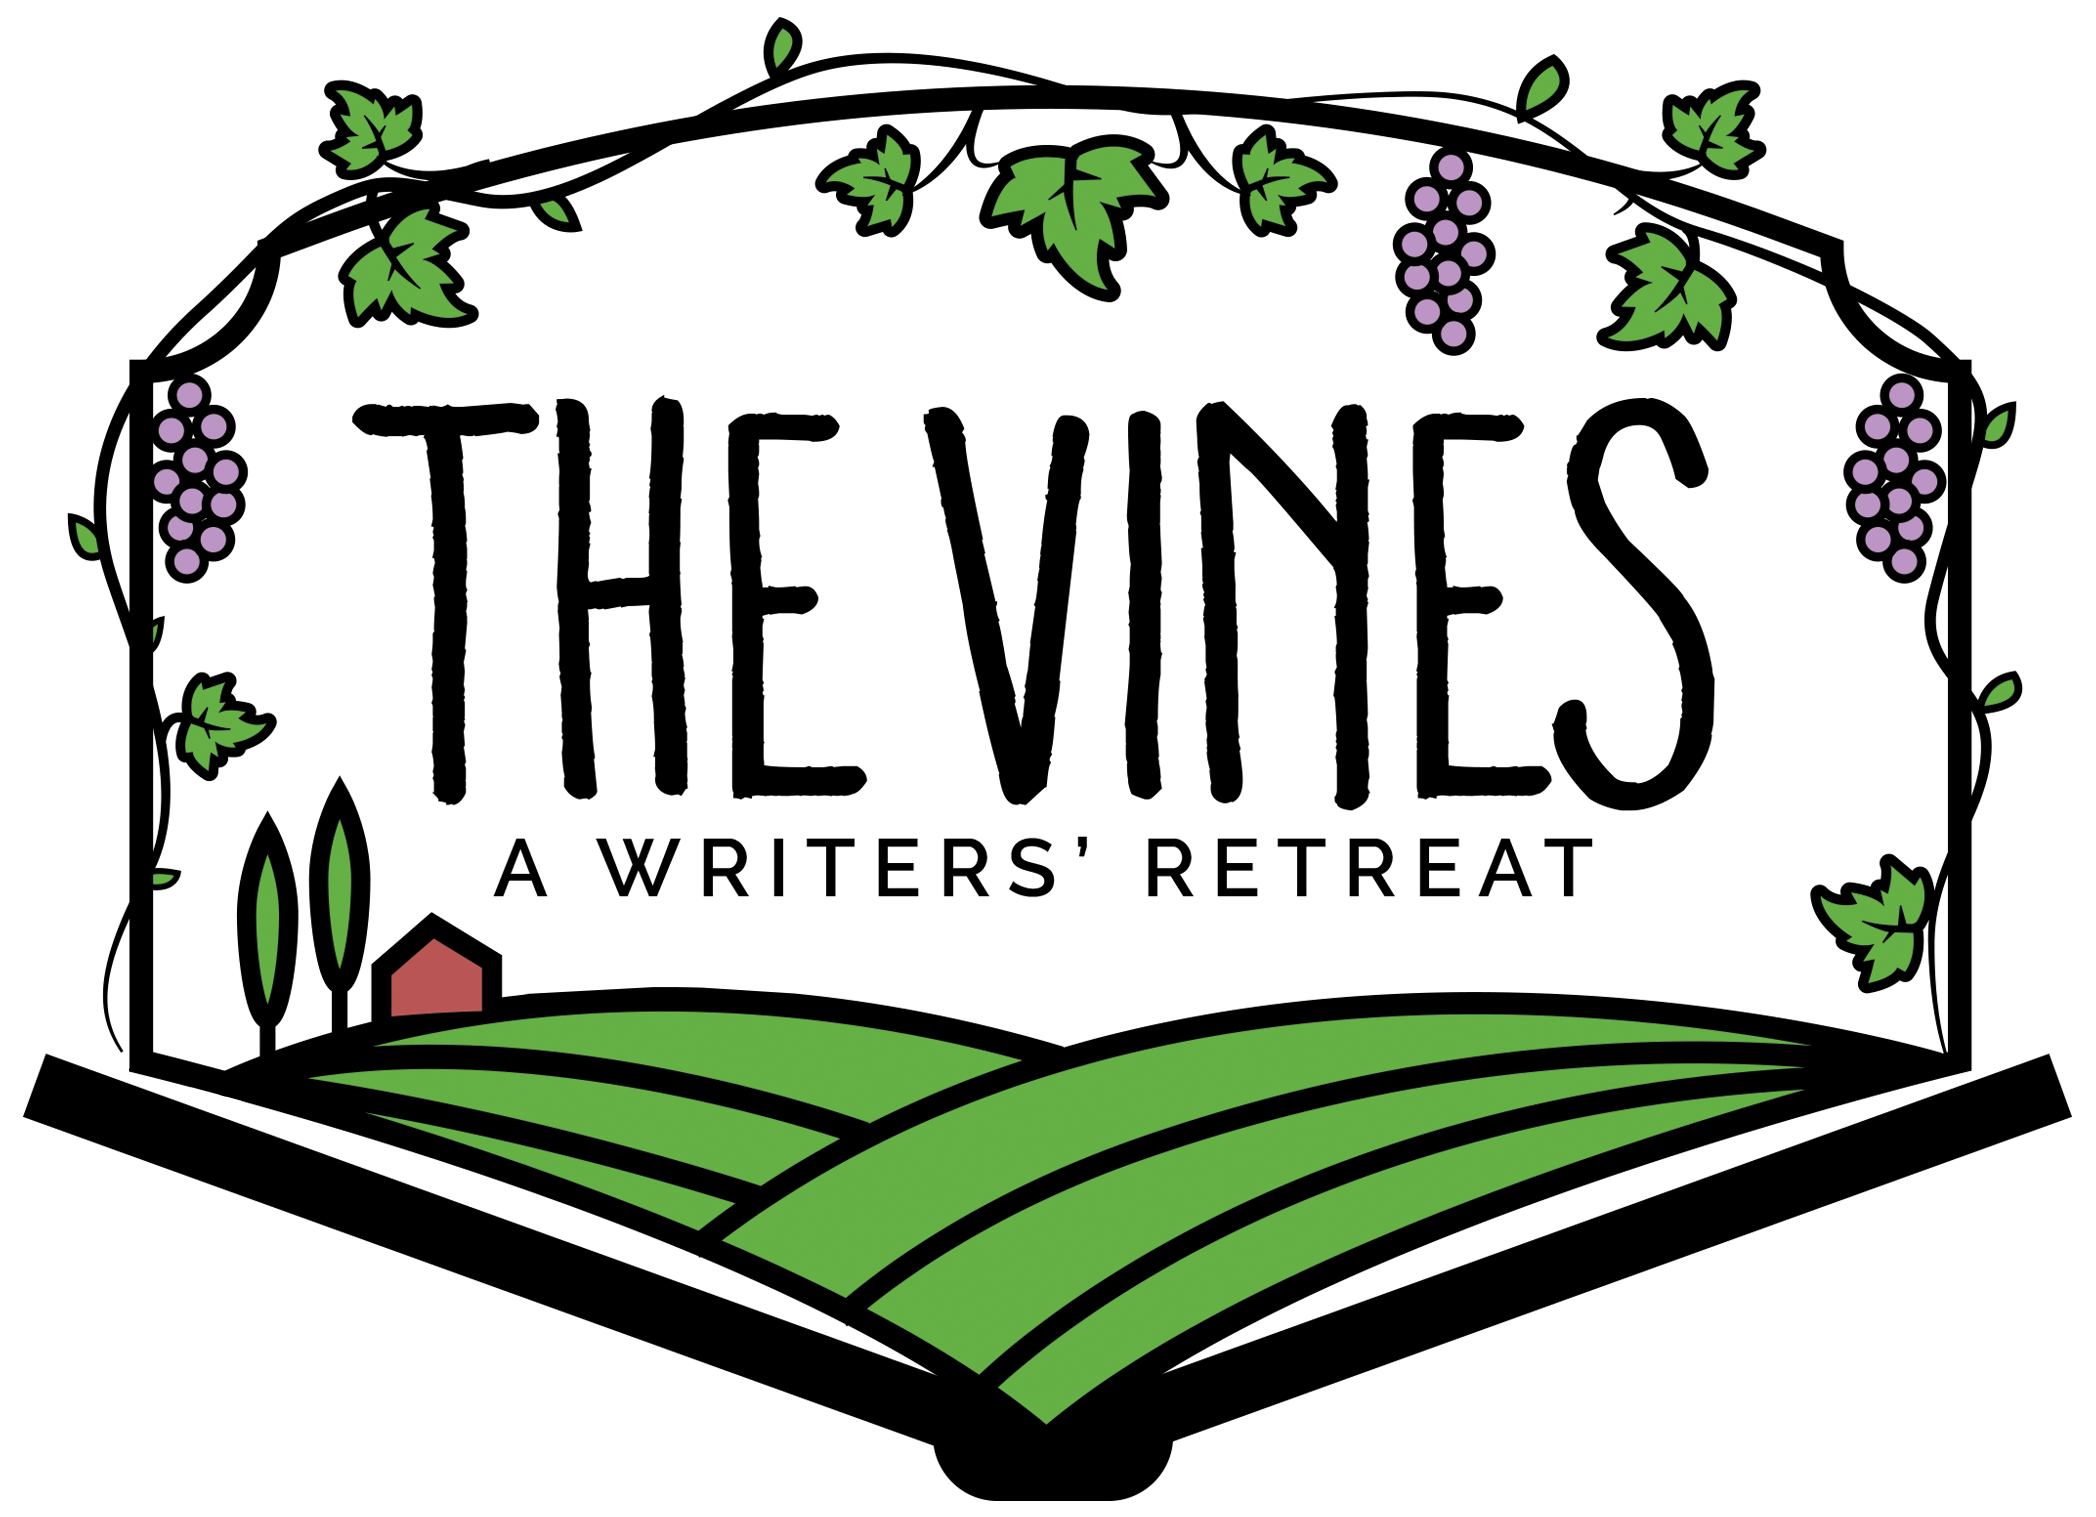 Vines clipart grass. The a writer s